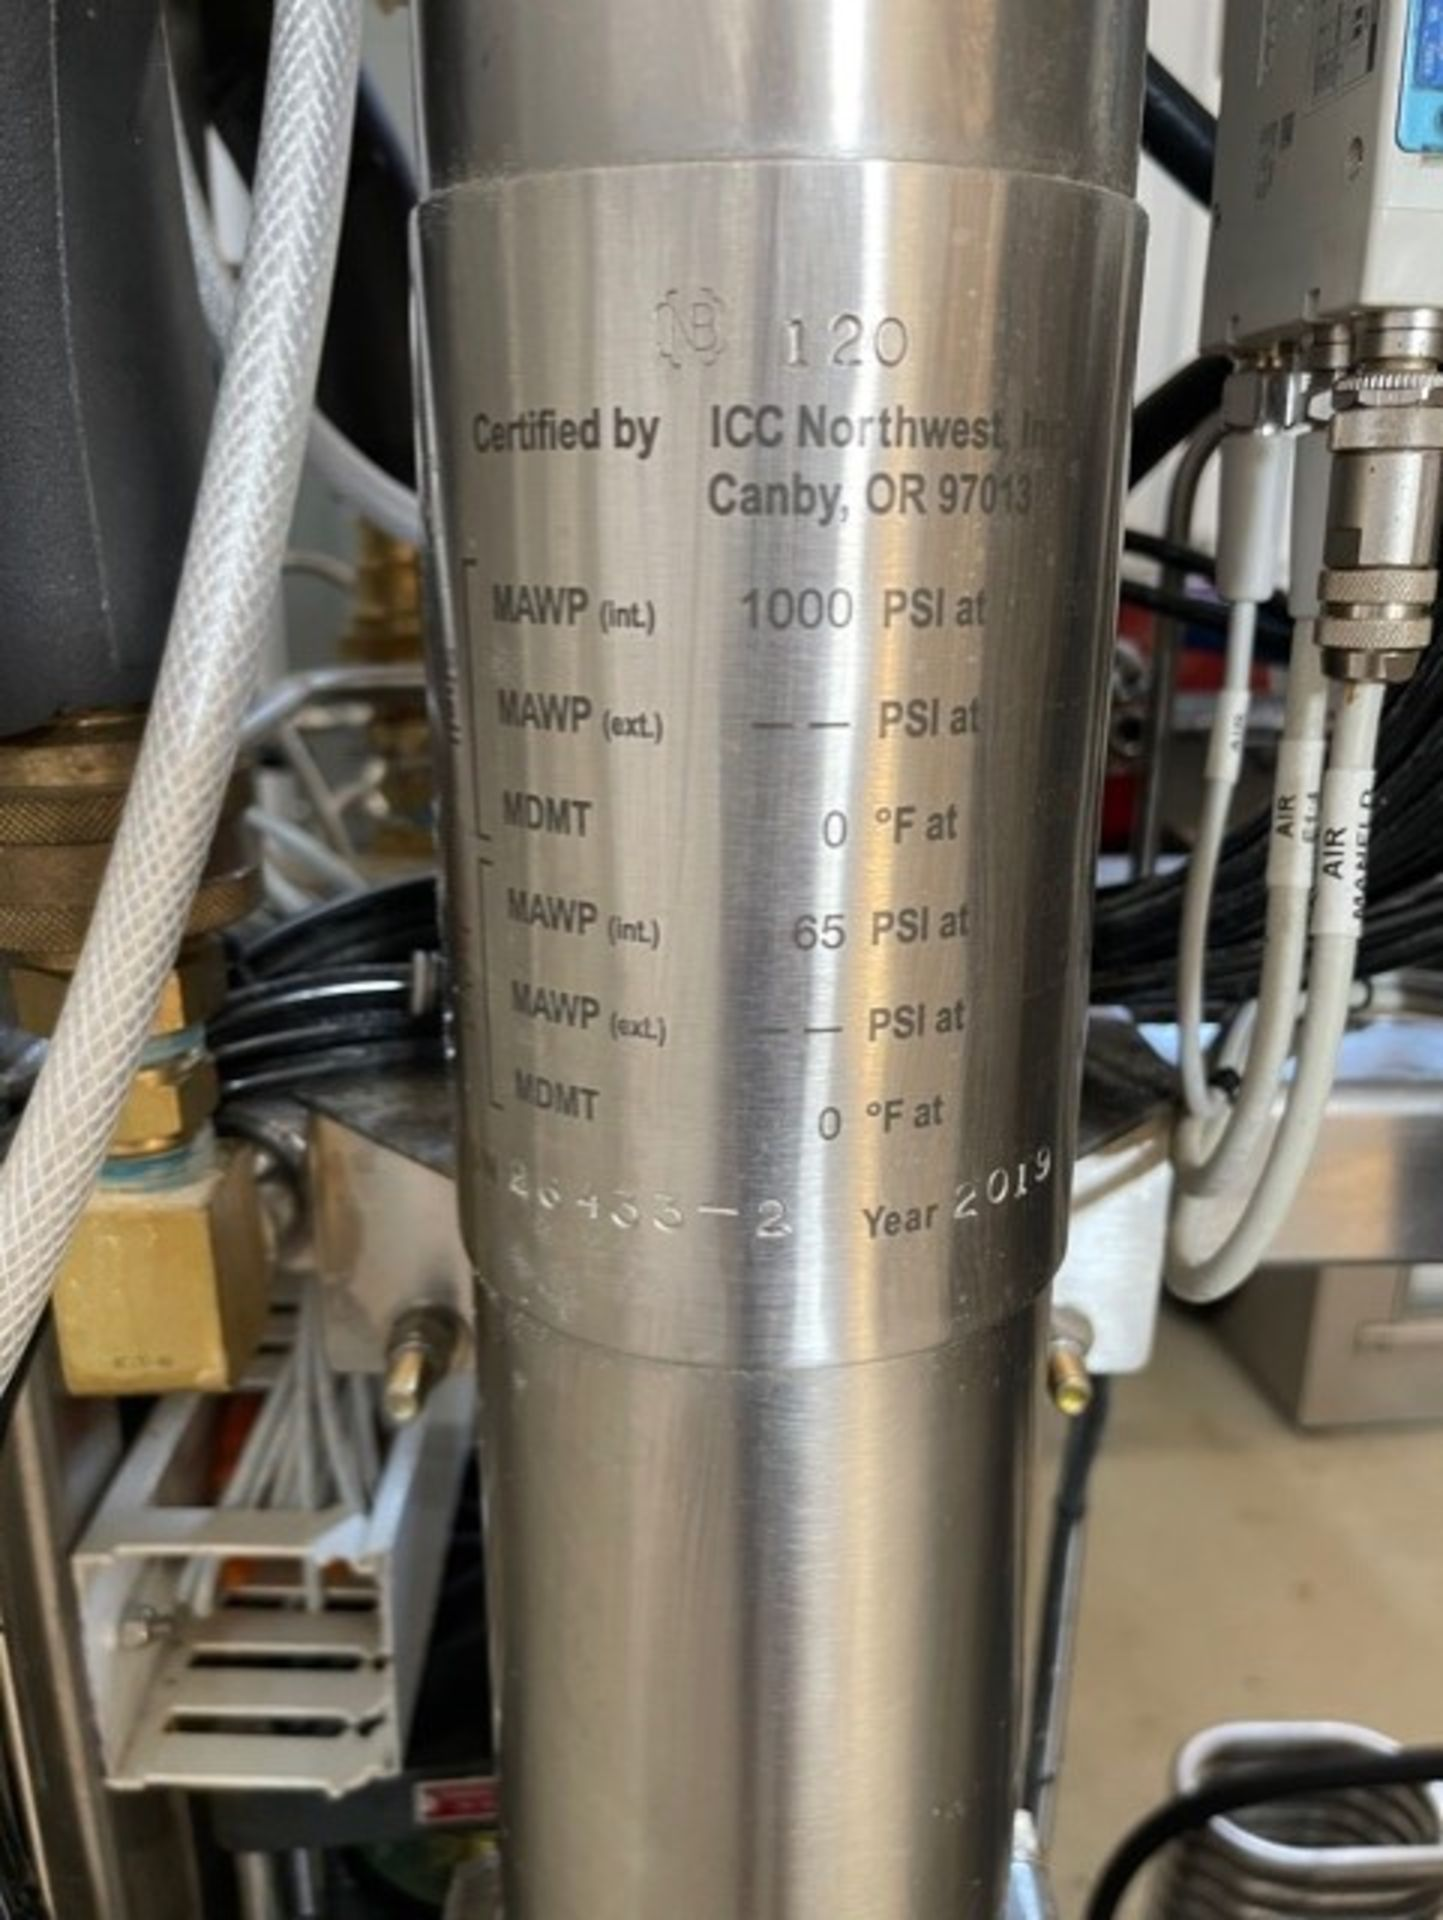 Used - MRX Supercritical CO2 Extractor Complete System. See details in description full inventory - Image 5 of 29